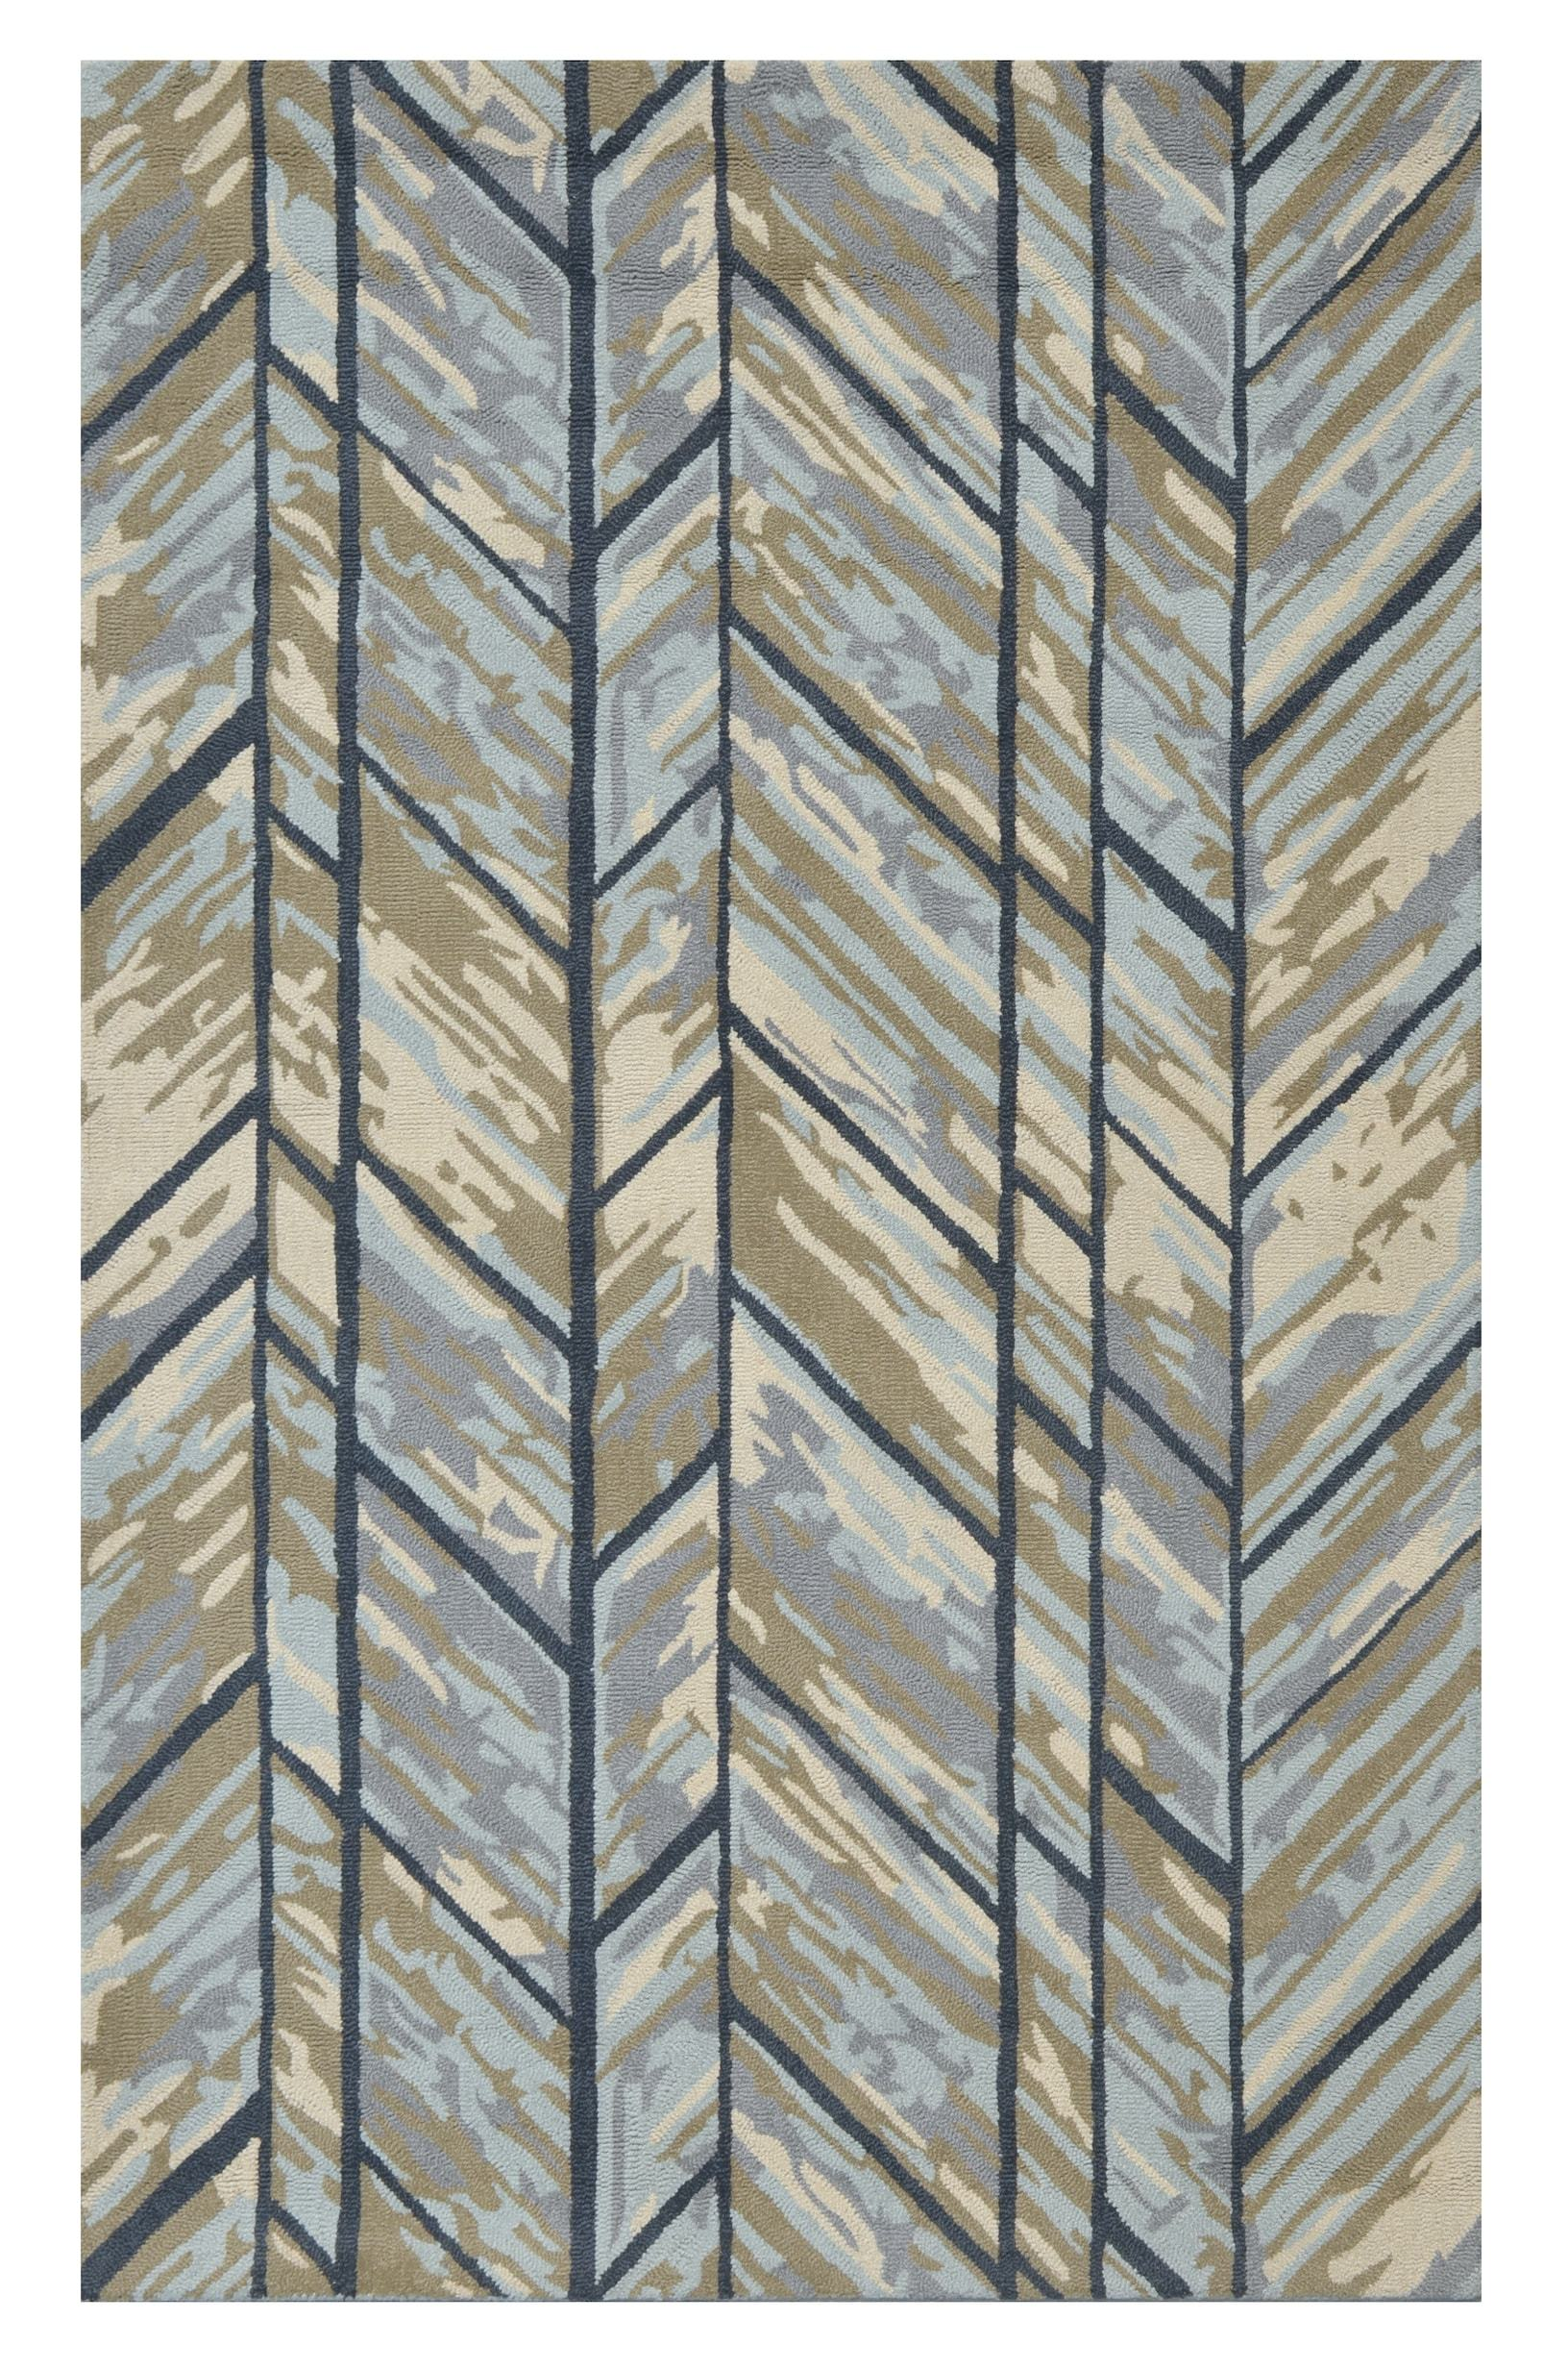 Thebes Hand Tufted Rug by House of Rugs - Home Artisan